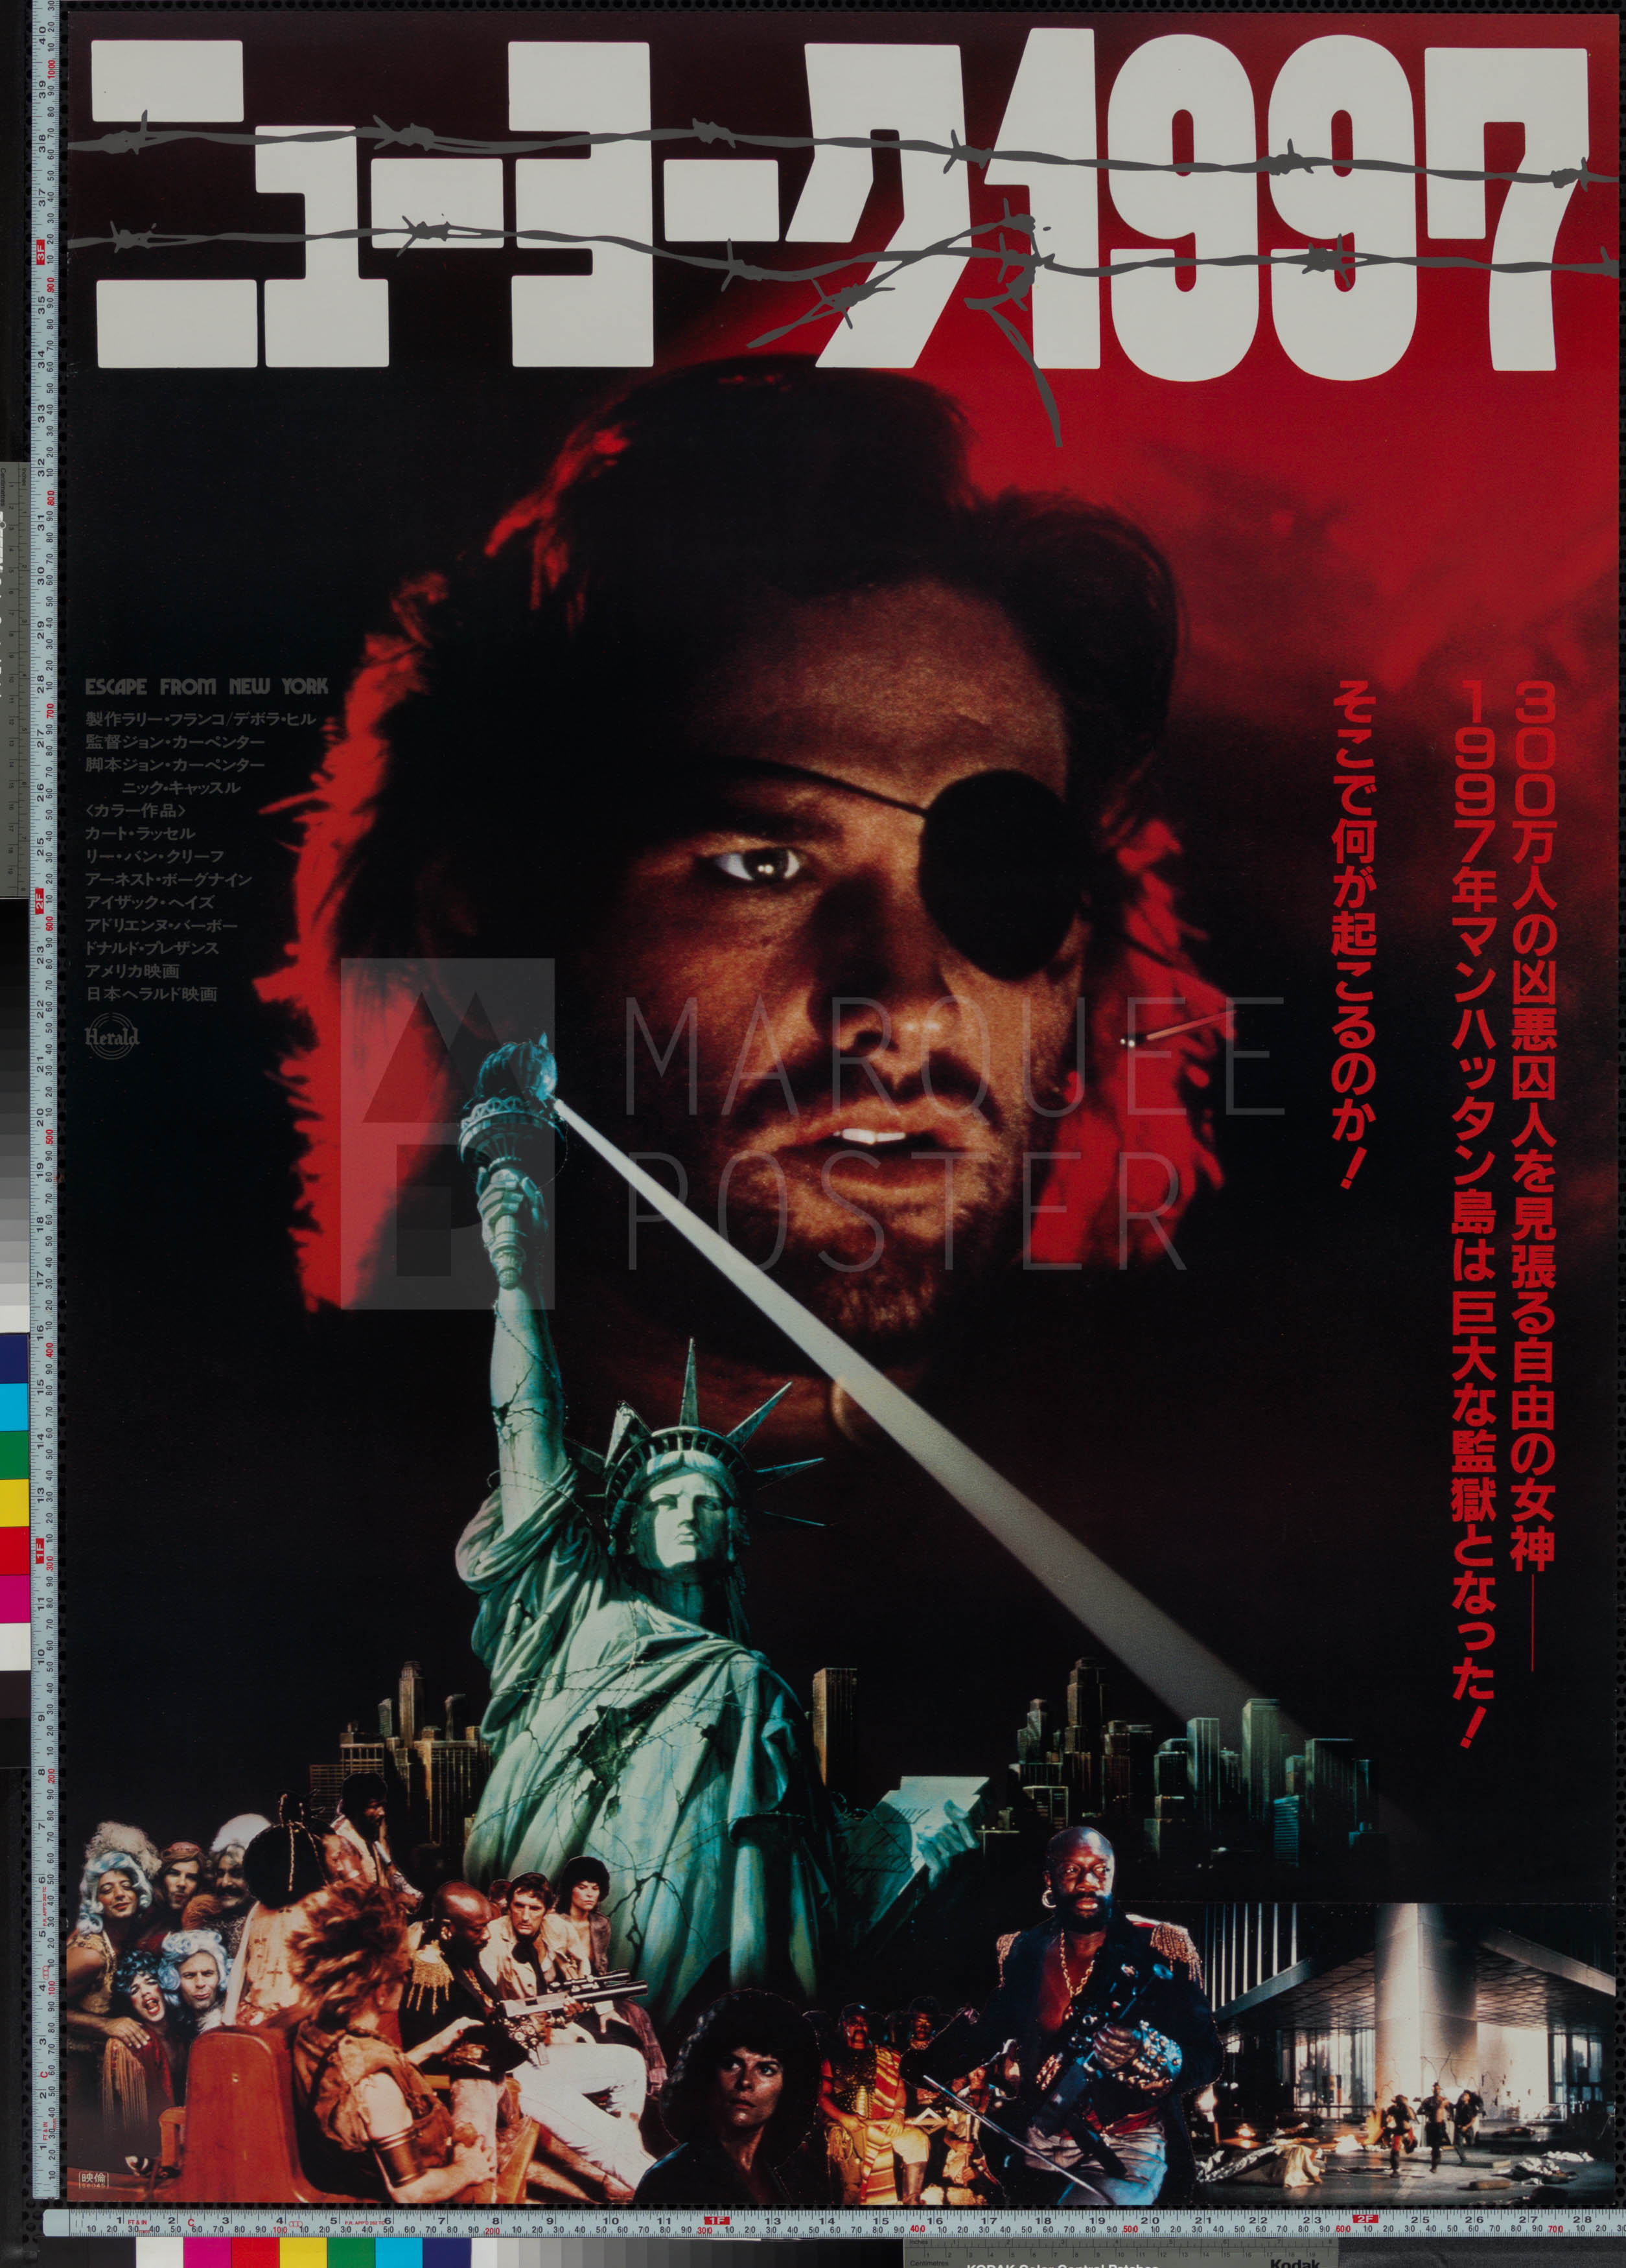 19-escape-from-new-york-snake-style-japanese-b1-1981-02